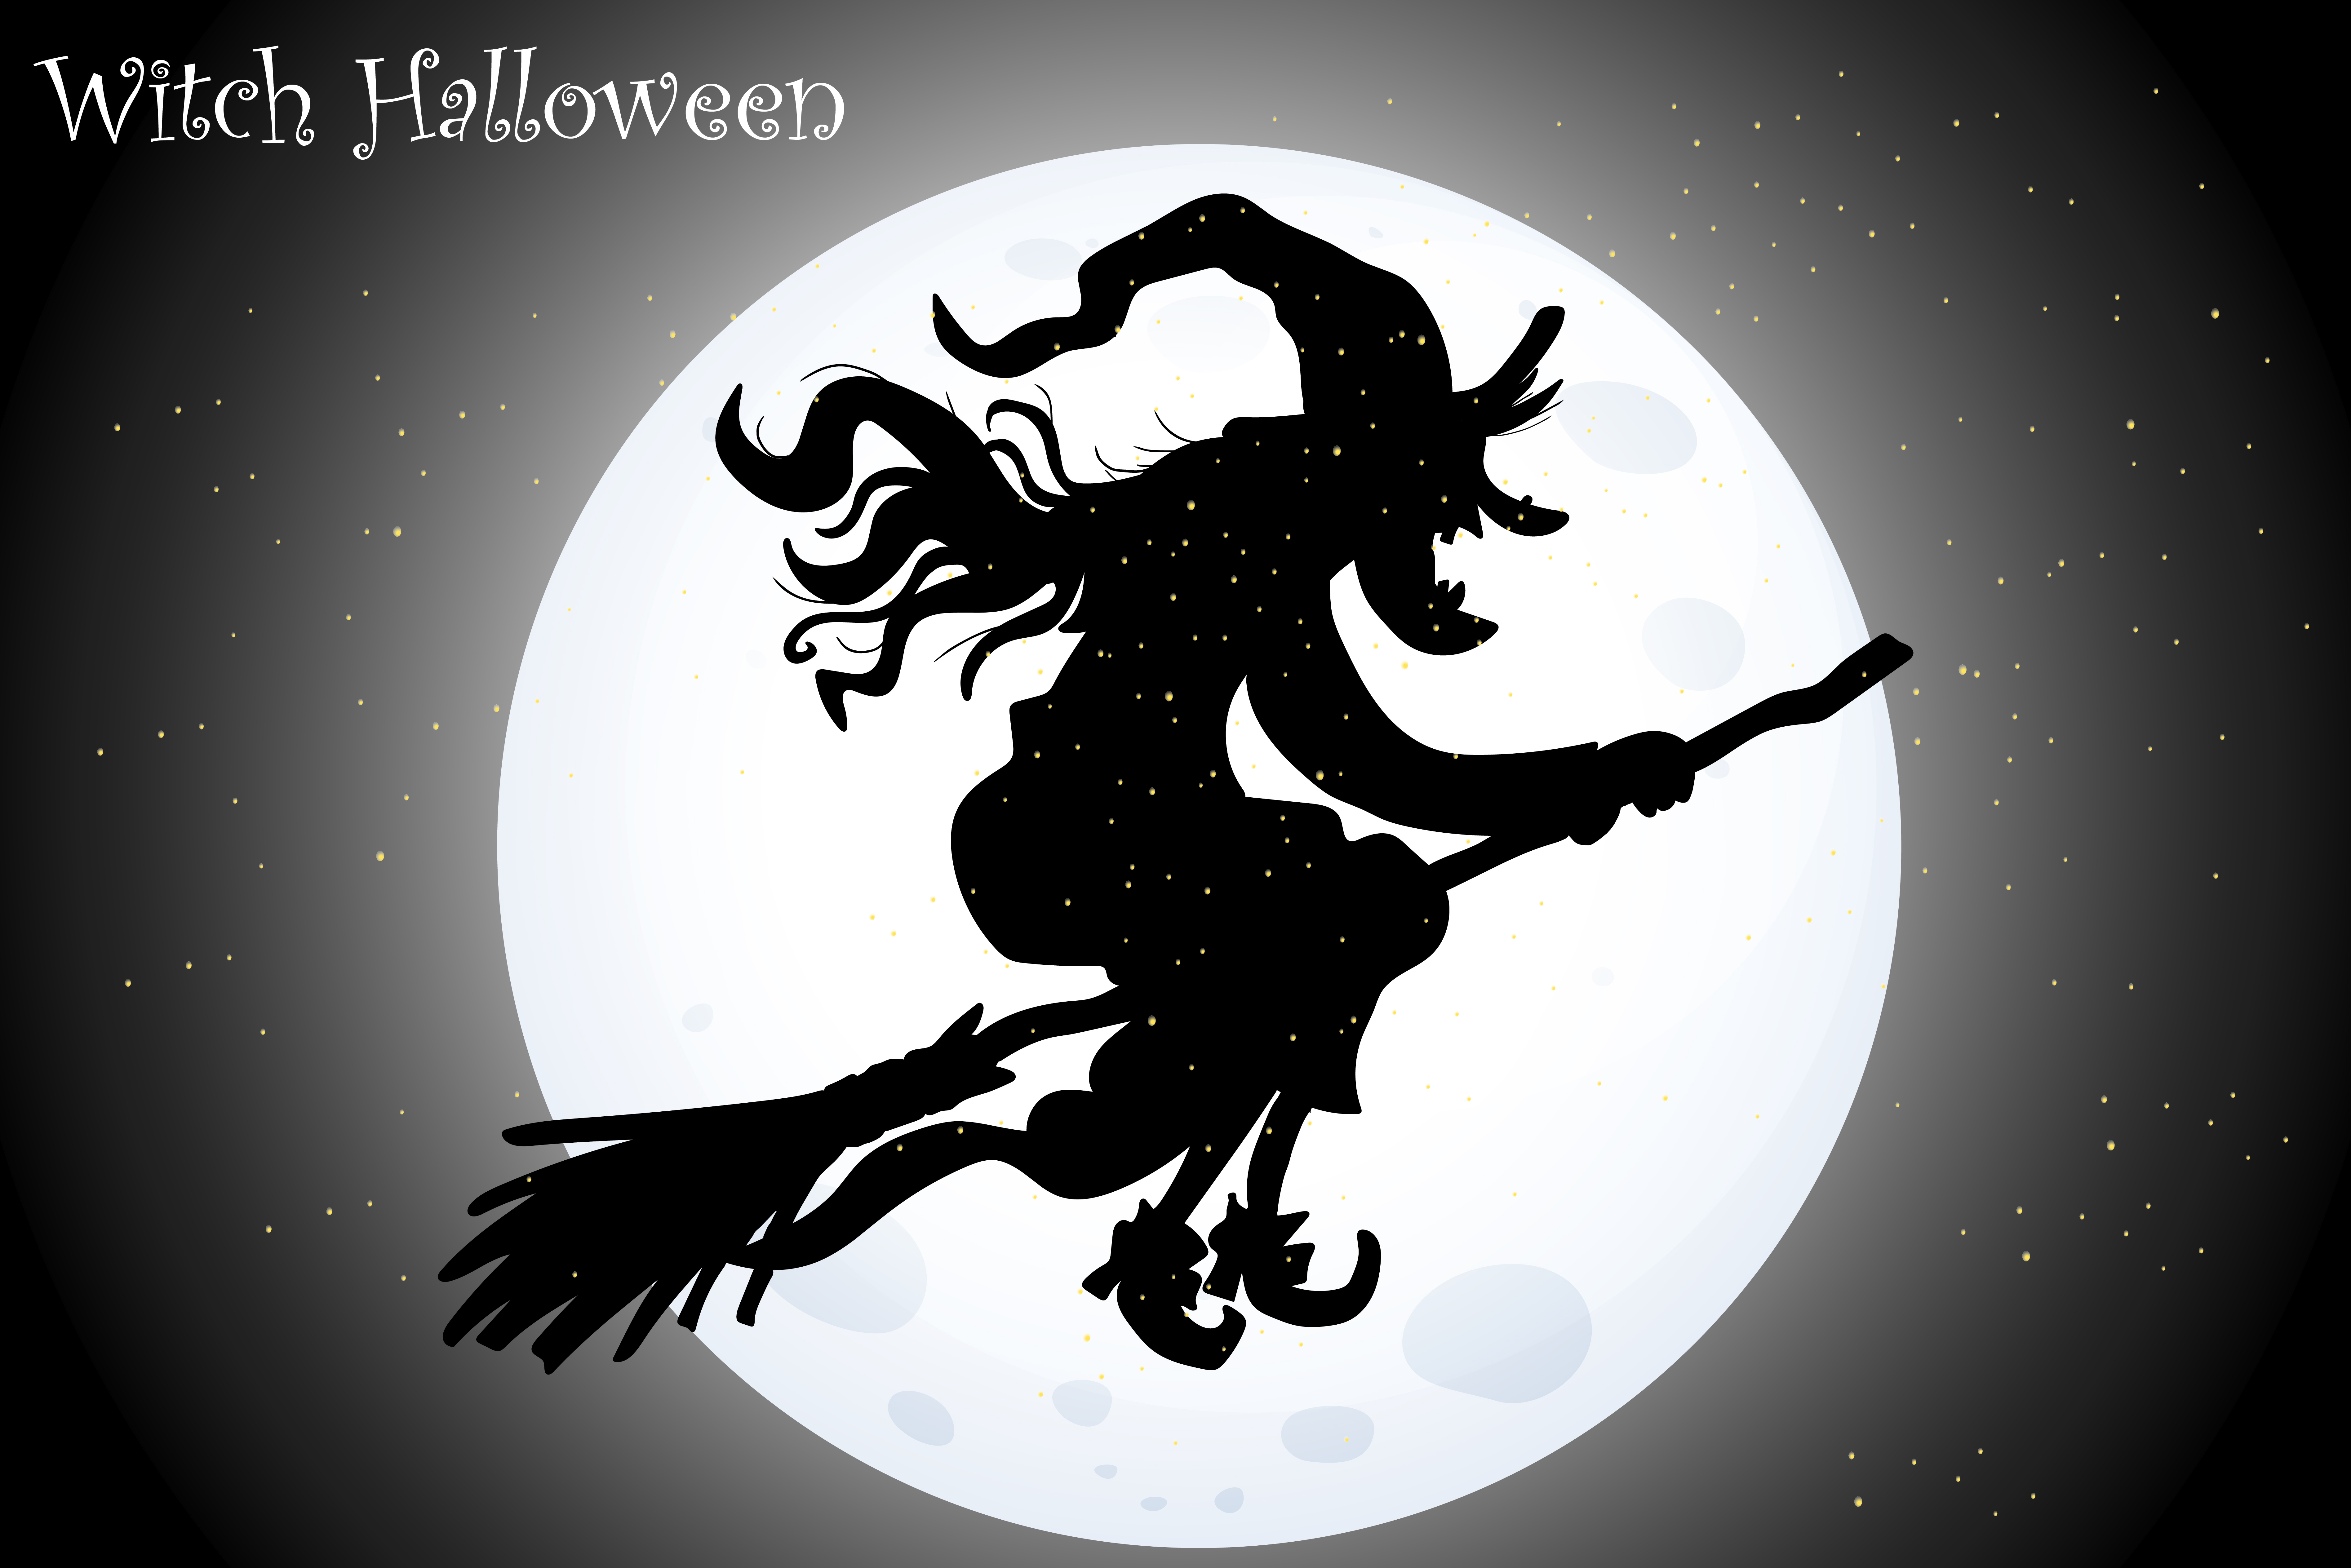 Download Free Witch Halloween Graphic By Raihan Kucluk Creative Fabrica for Cricut Explore, Silhouette and other cutting machines.